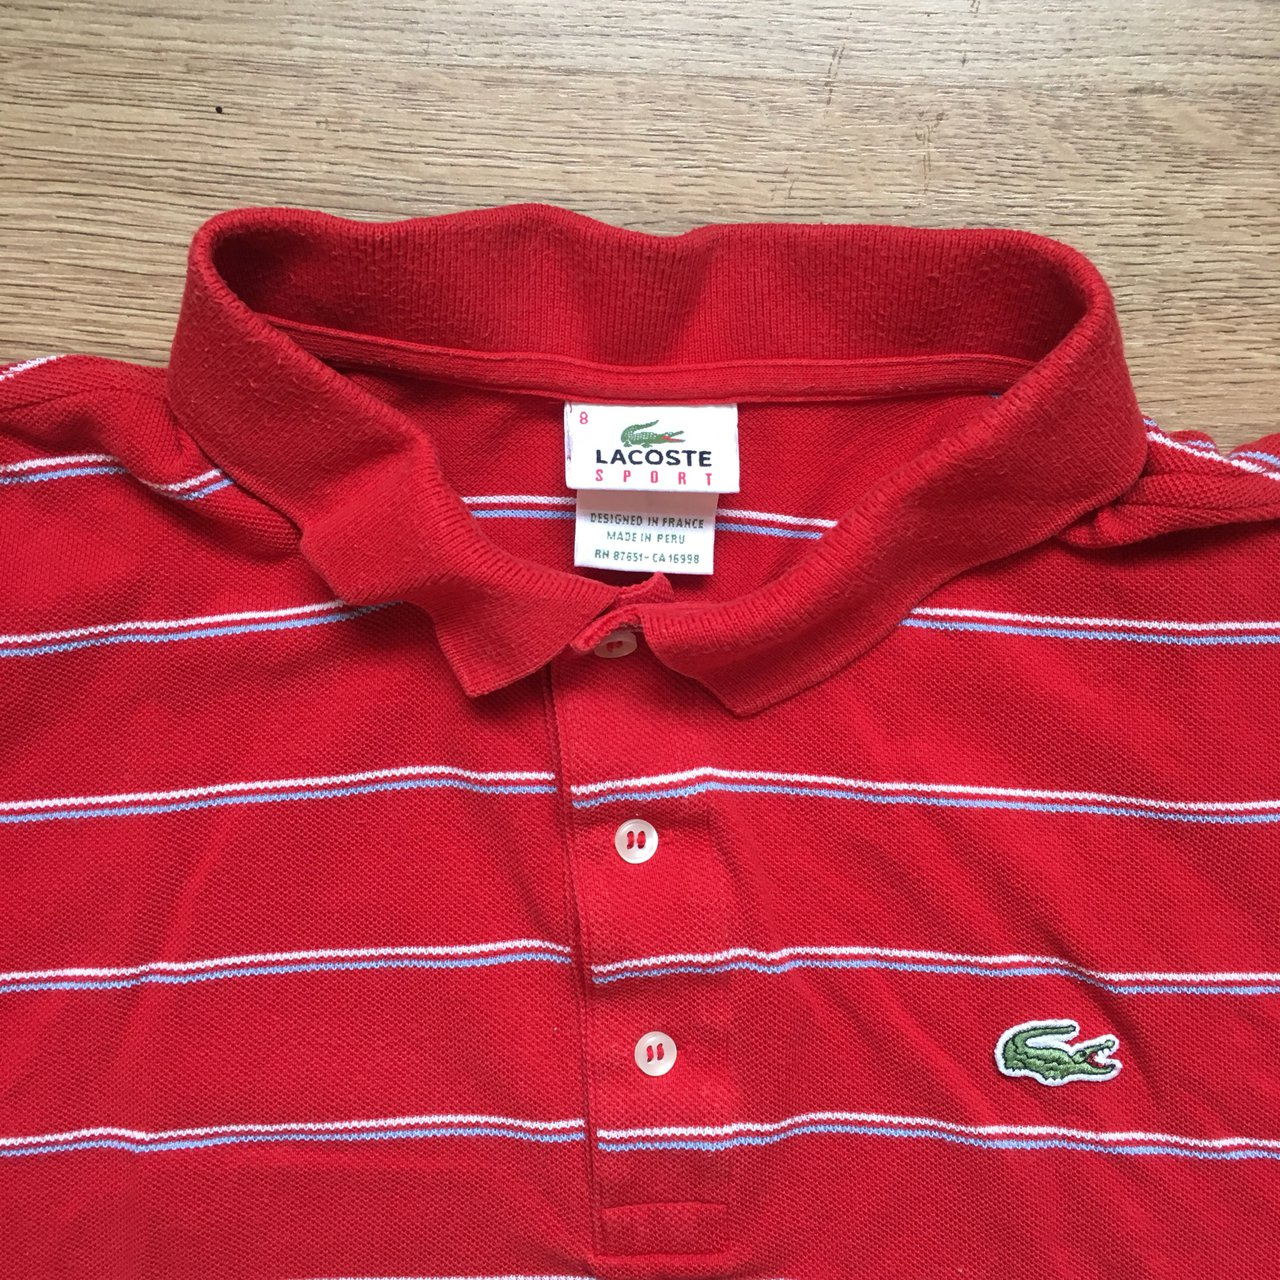 3c324da1f9aca Lacoste Polo Shirts Made In Peru